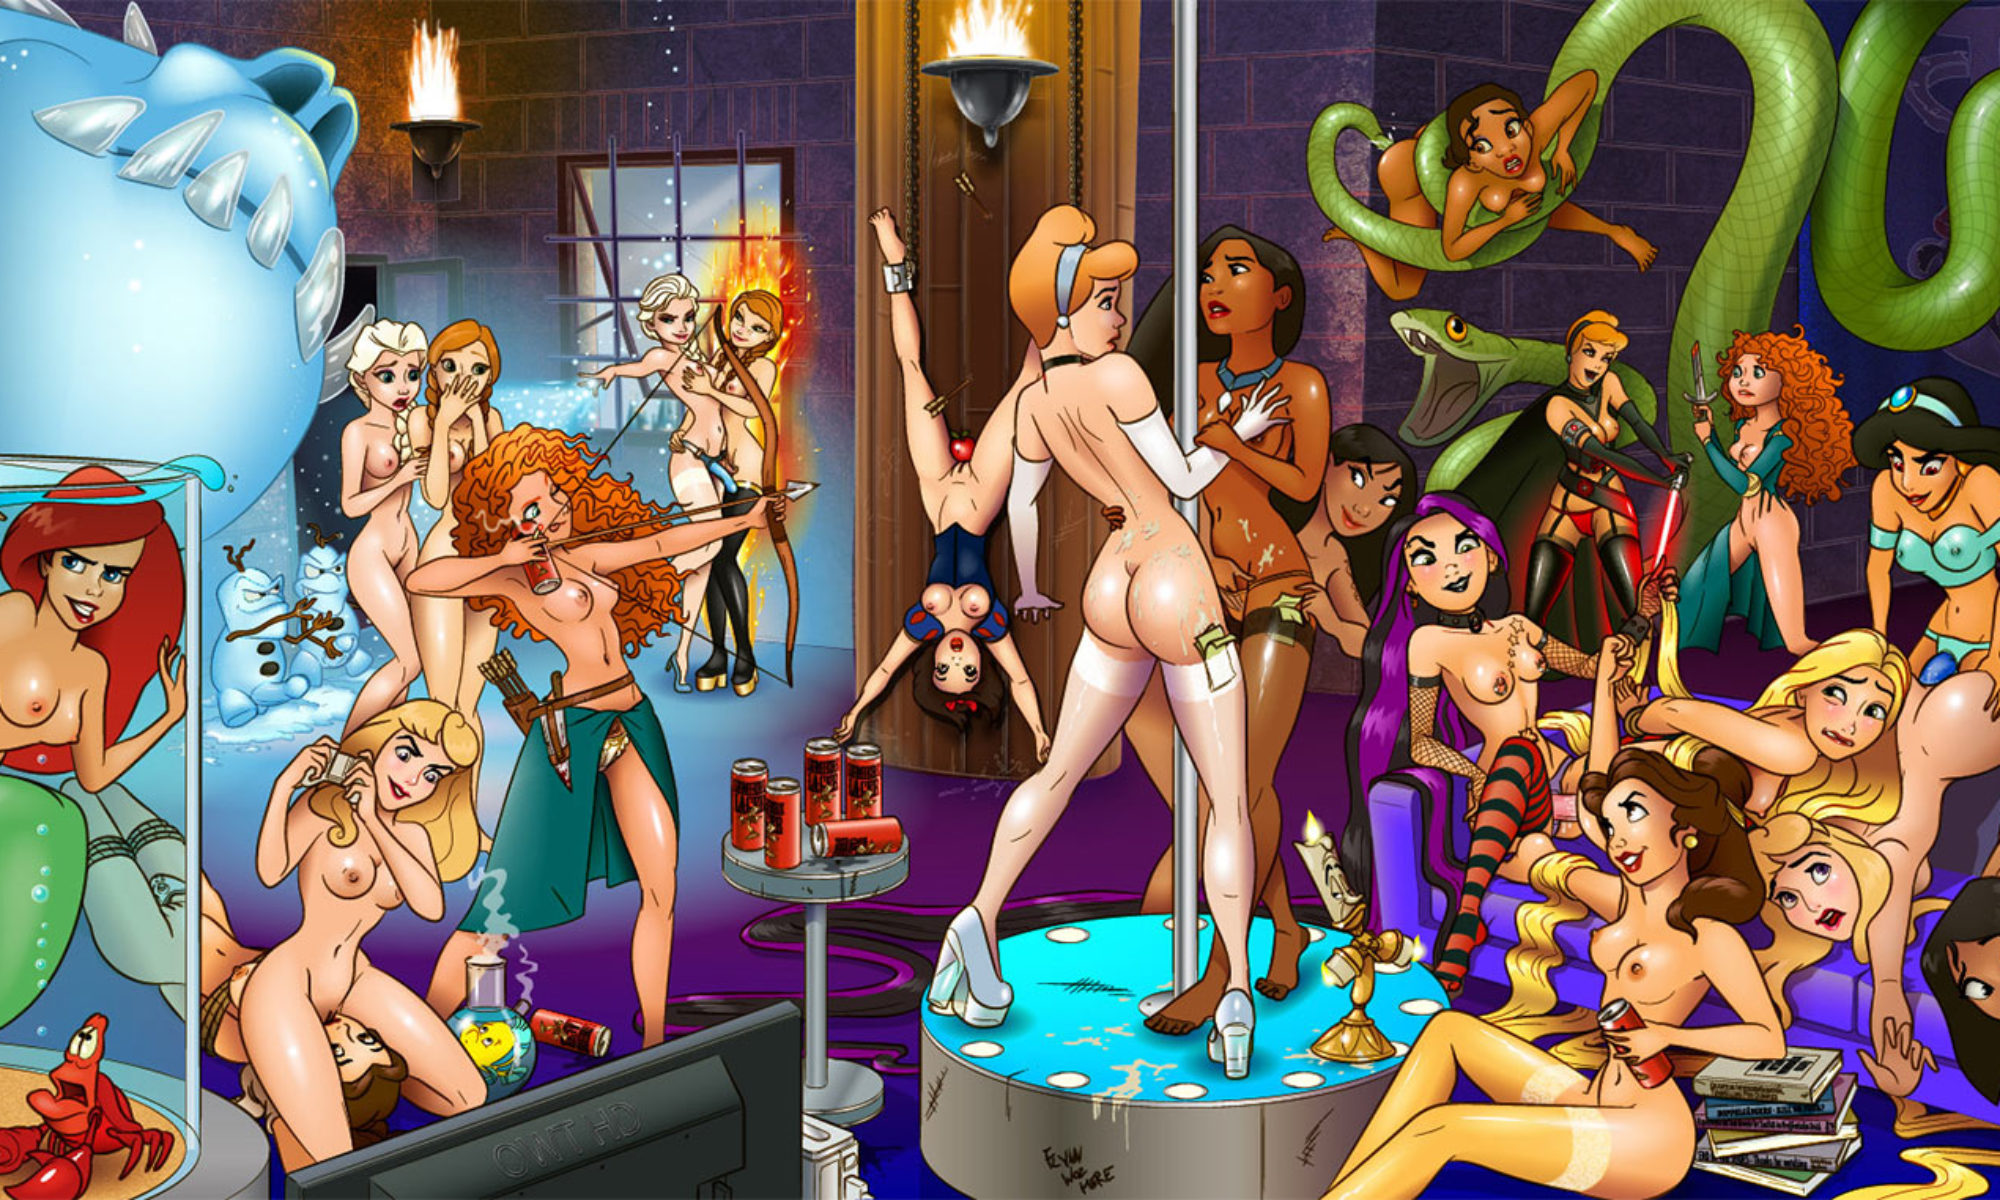 Disney sex cartoons: exclusive Disney porn and cartoon sex